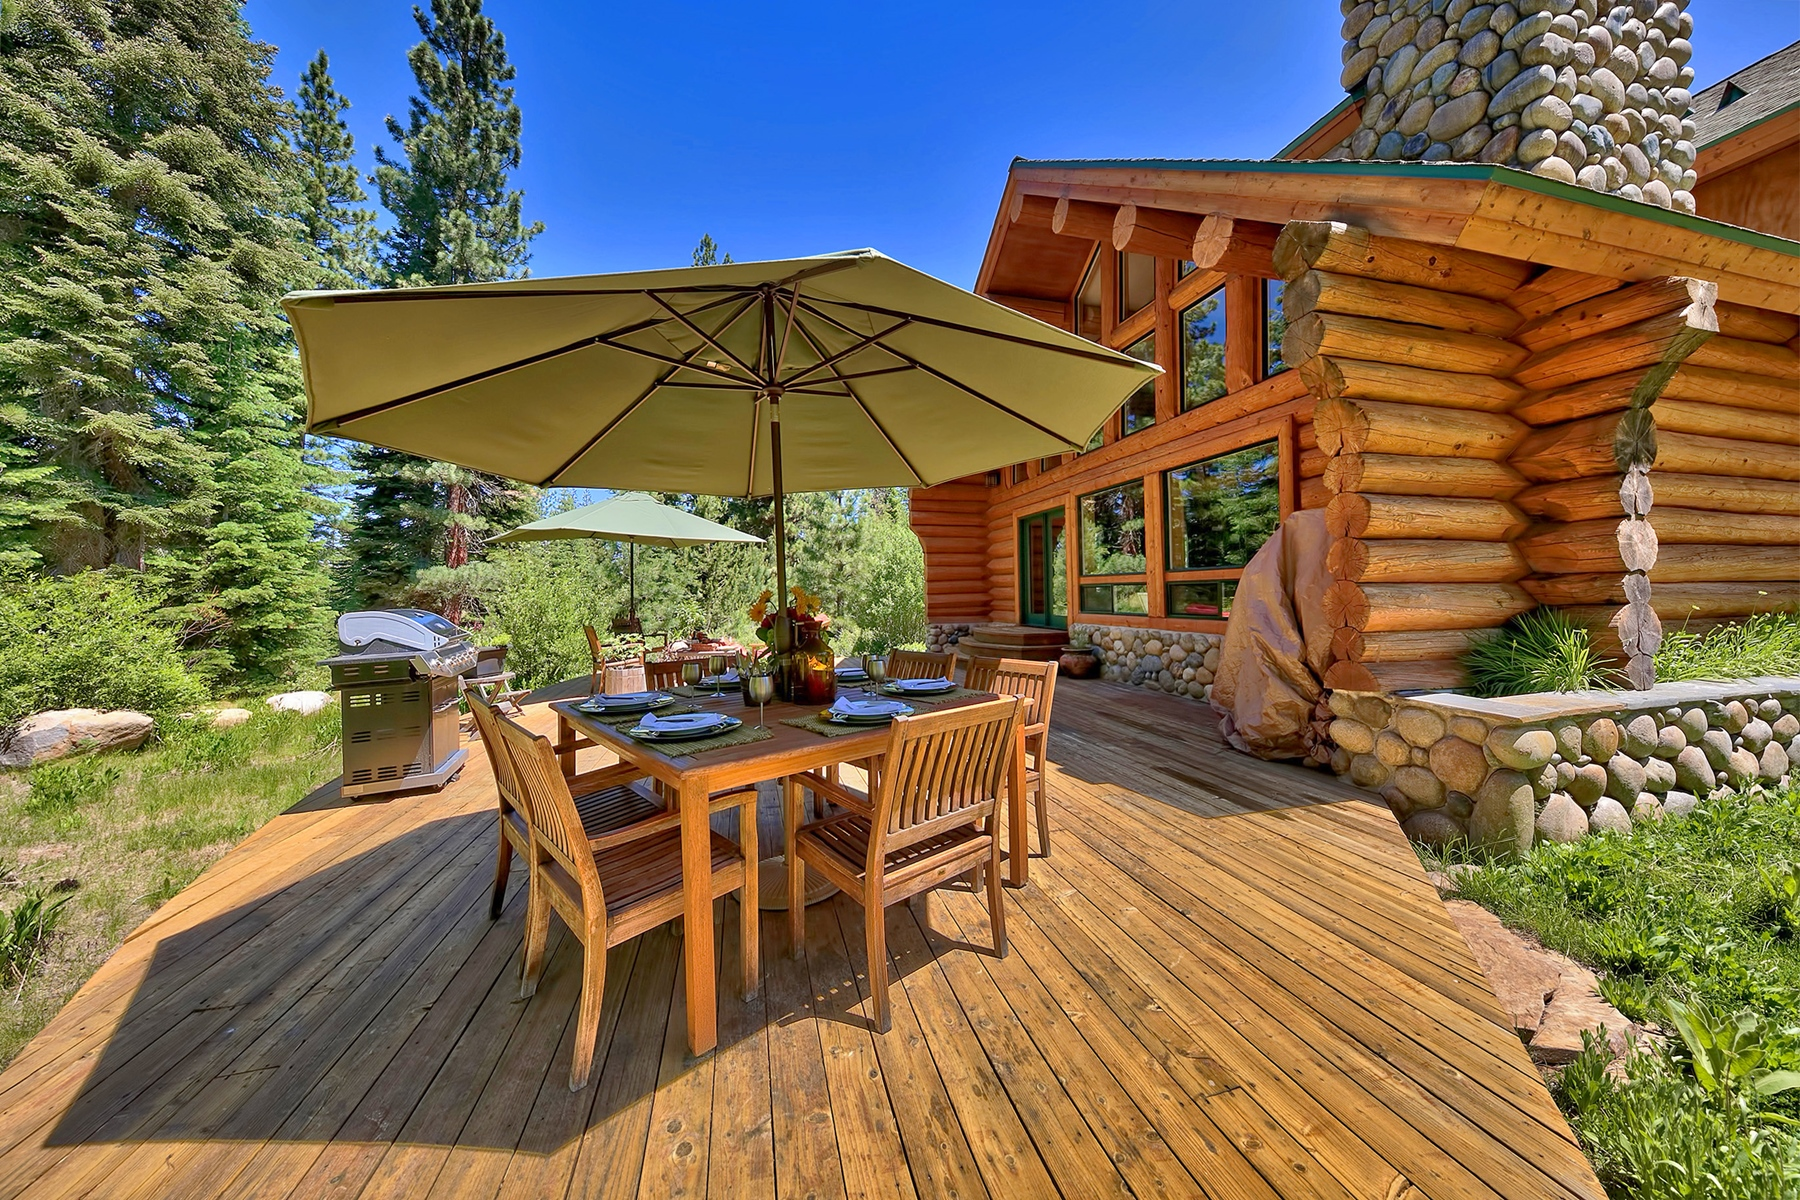 Additional photo for property listing at 11979 Stony Creek Court, Truckee CA 96161 11979 Stony Creek Court Truckee, California 96161 Estados Unidos